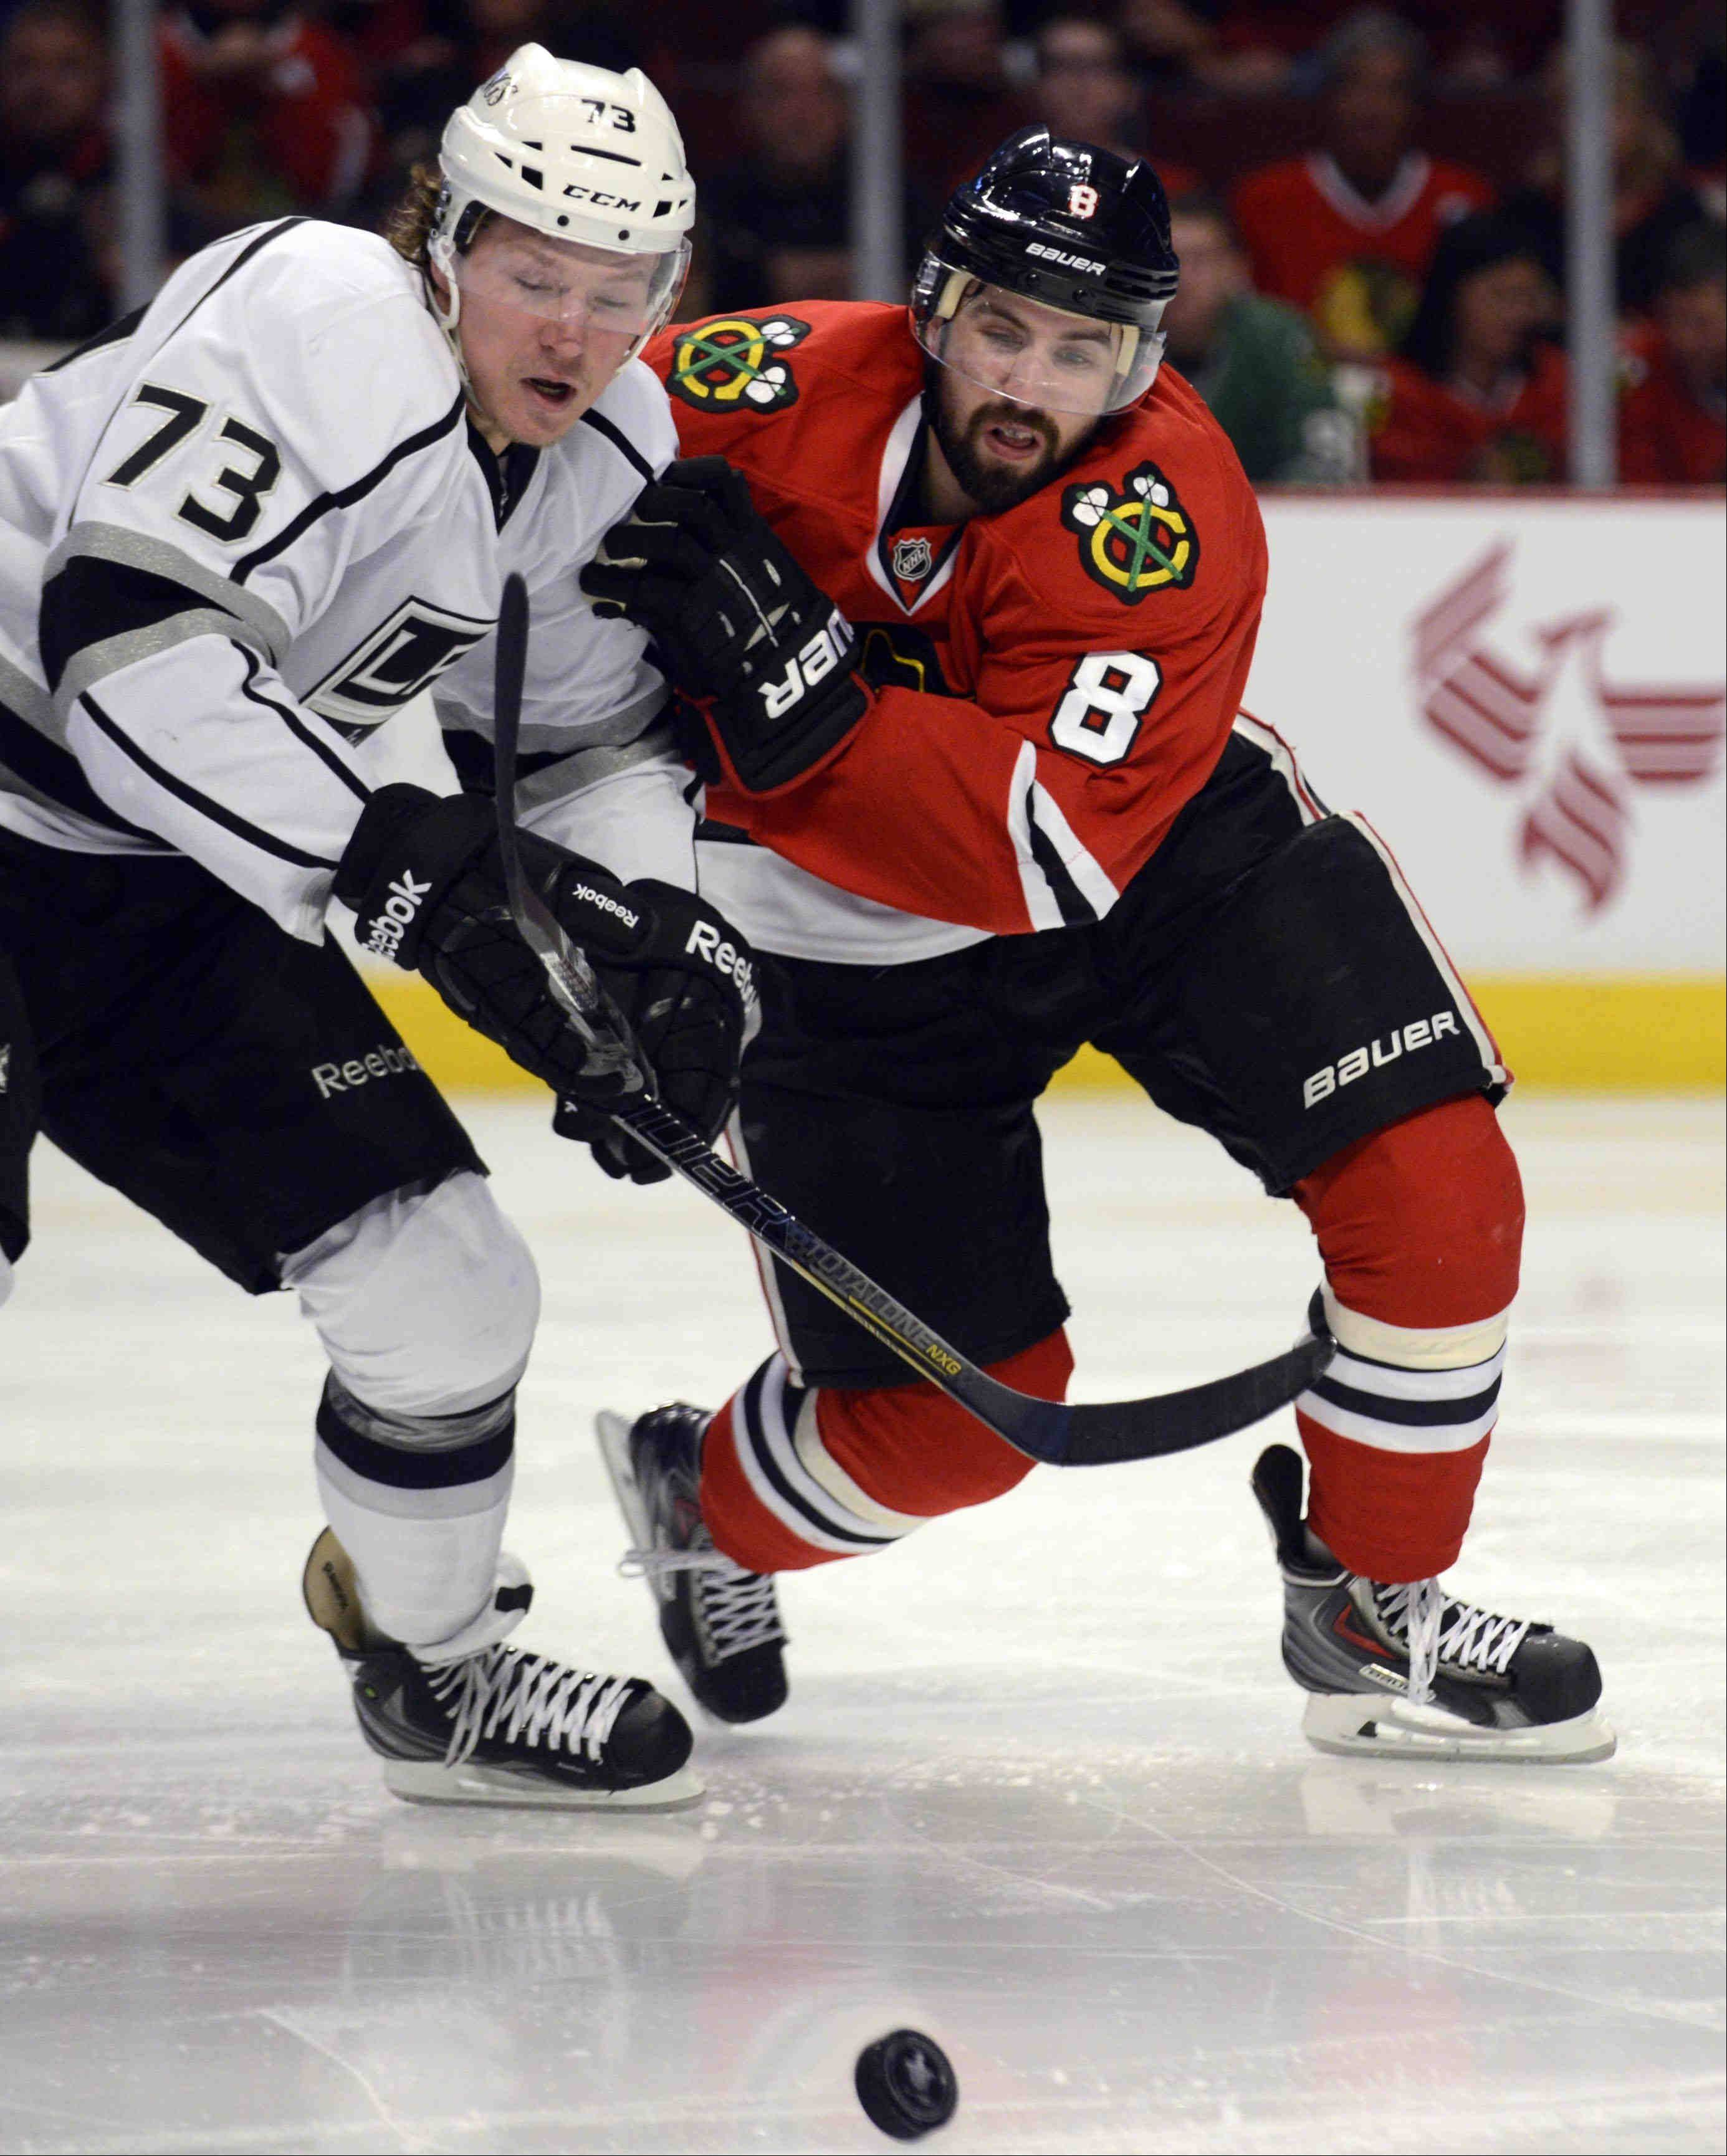 Chicago Blackhawks defenseman Nick Leddy battles with Los Angeles Kings center Tyler Toffoli during game 2 of the NHL Western Conference finals at the United Center Sunday night in Chicago.